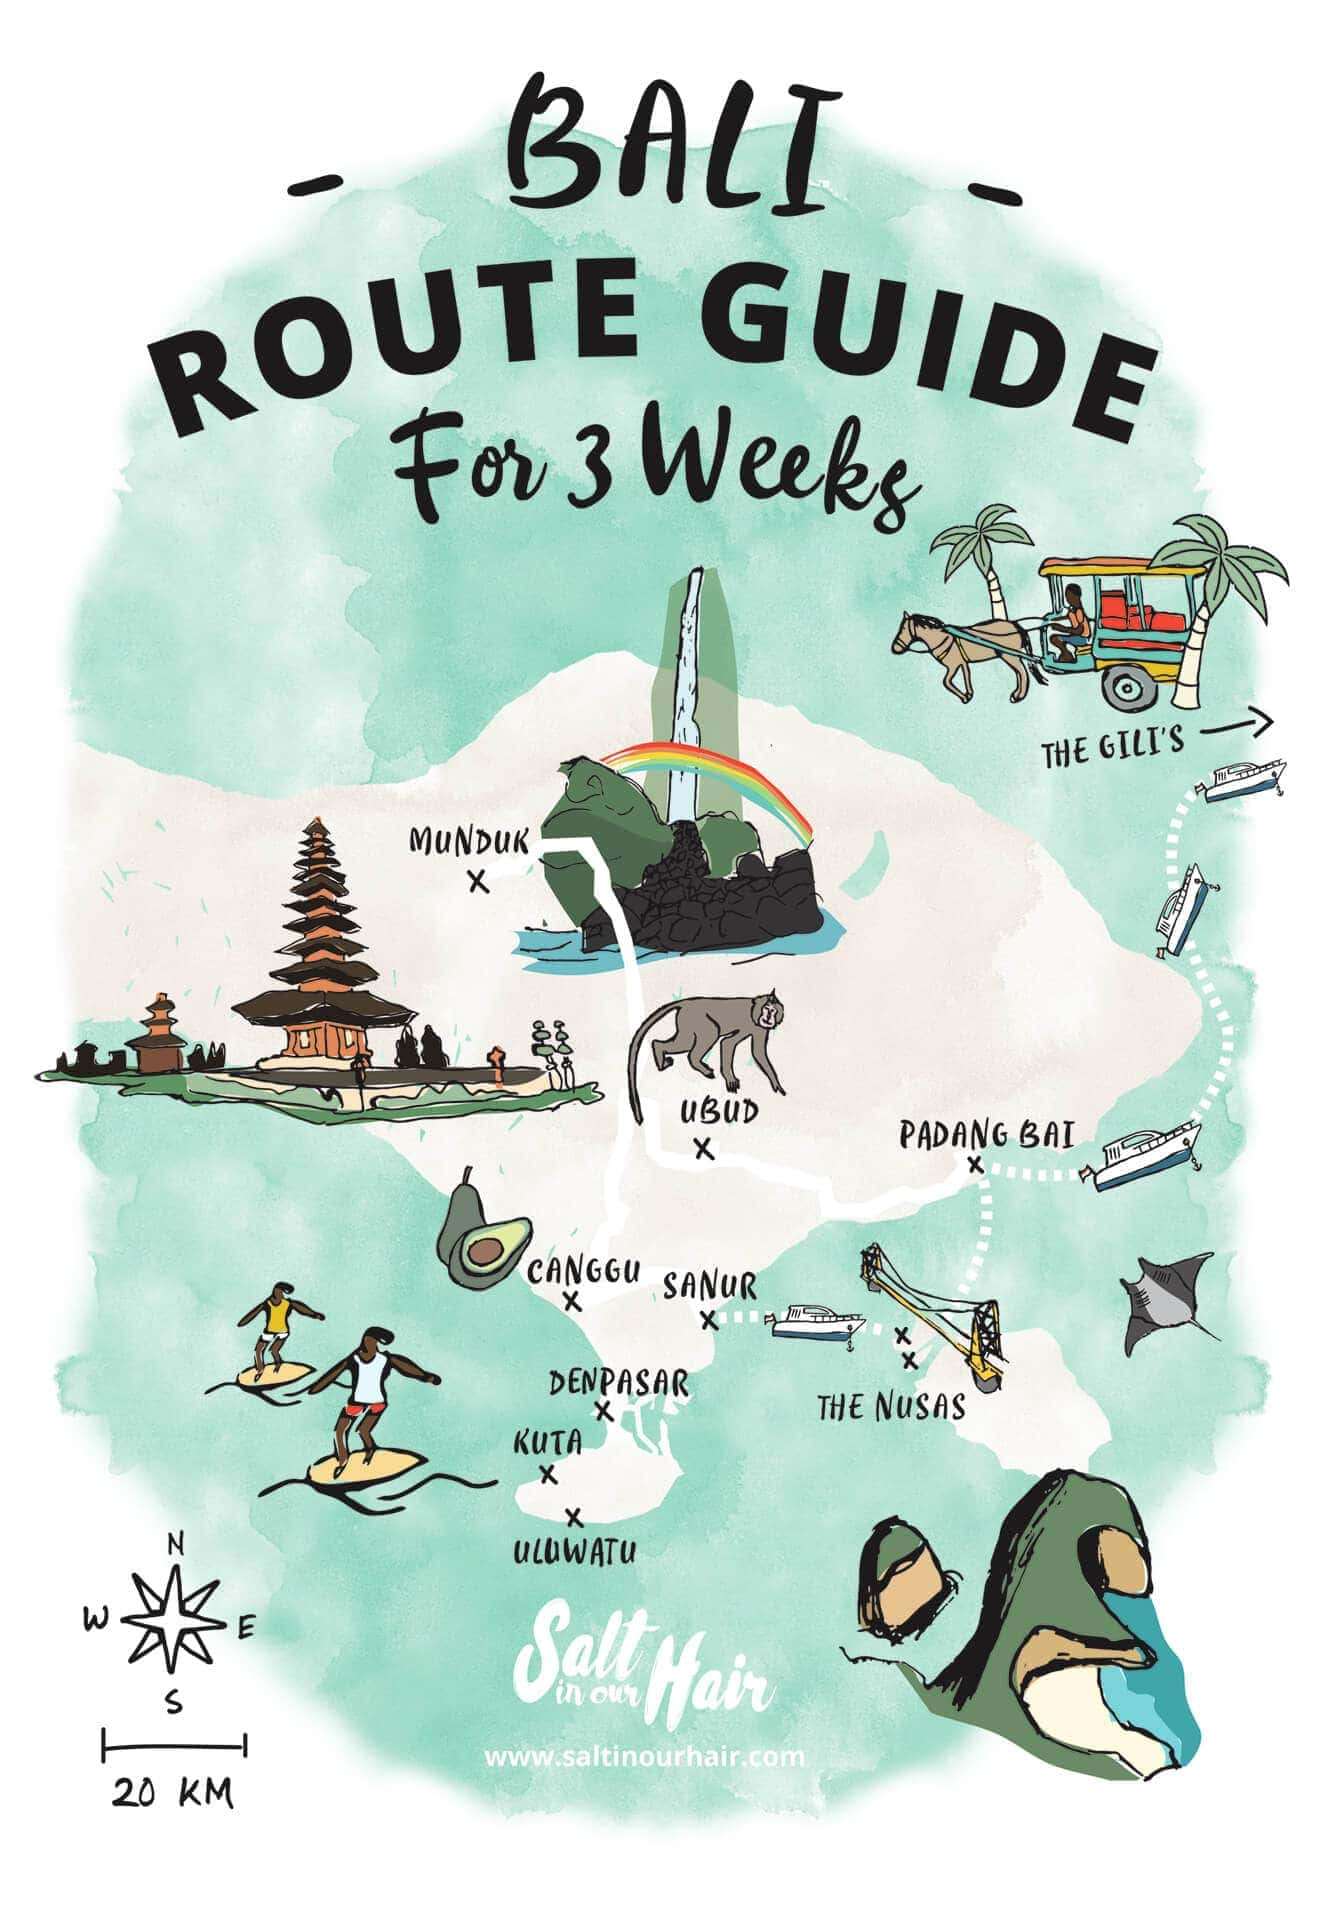 BALI ROUTE GUIDE | Ultimate 3-week guide on what to do in Bali